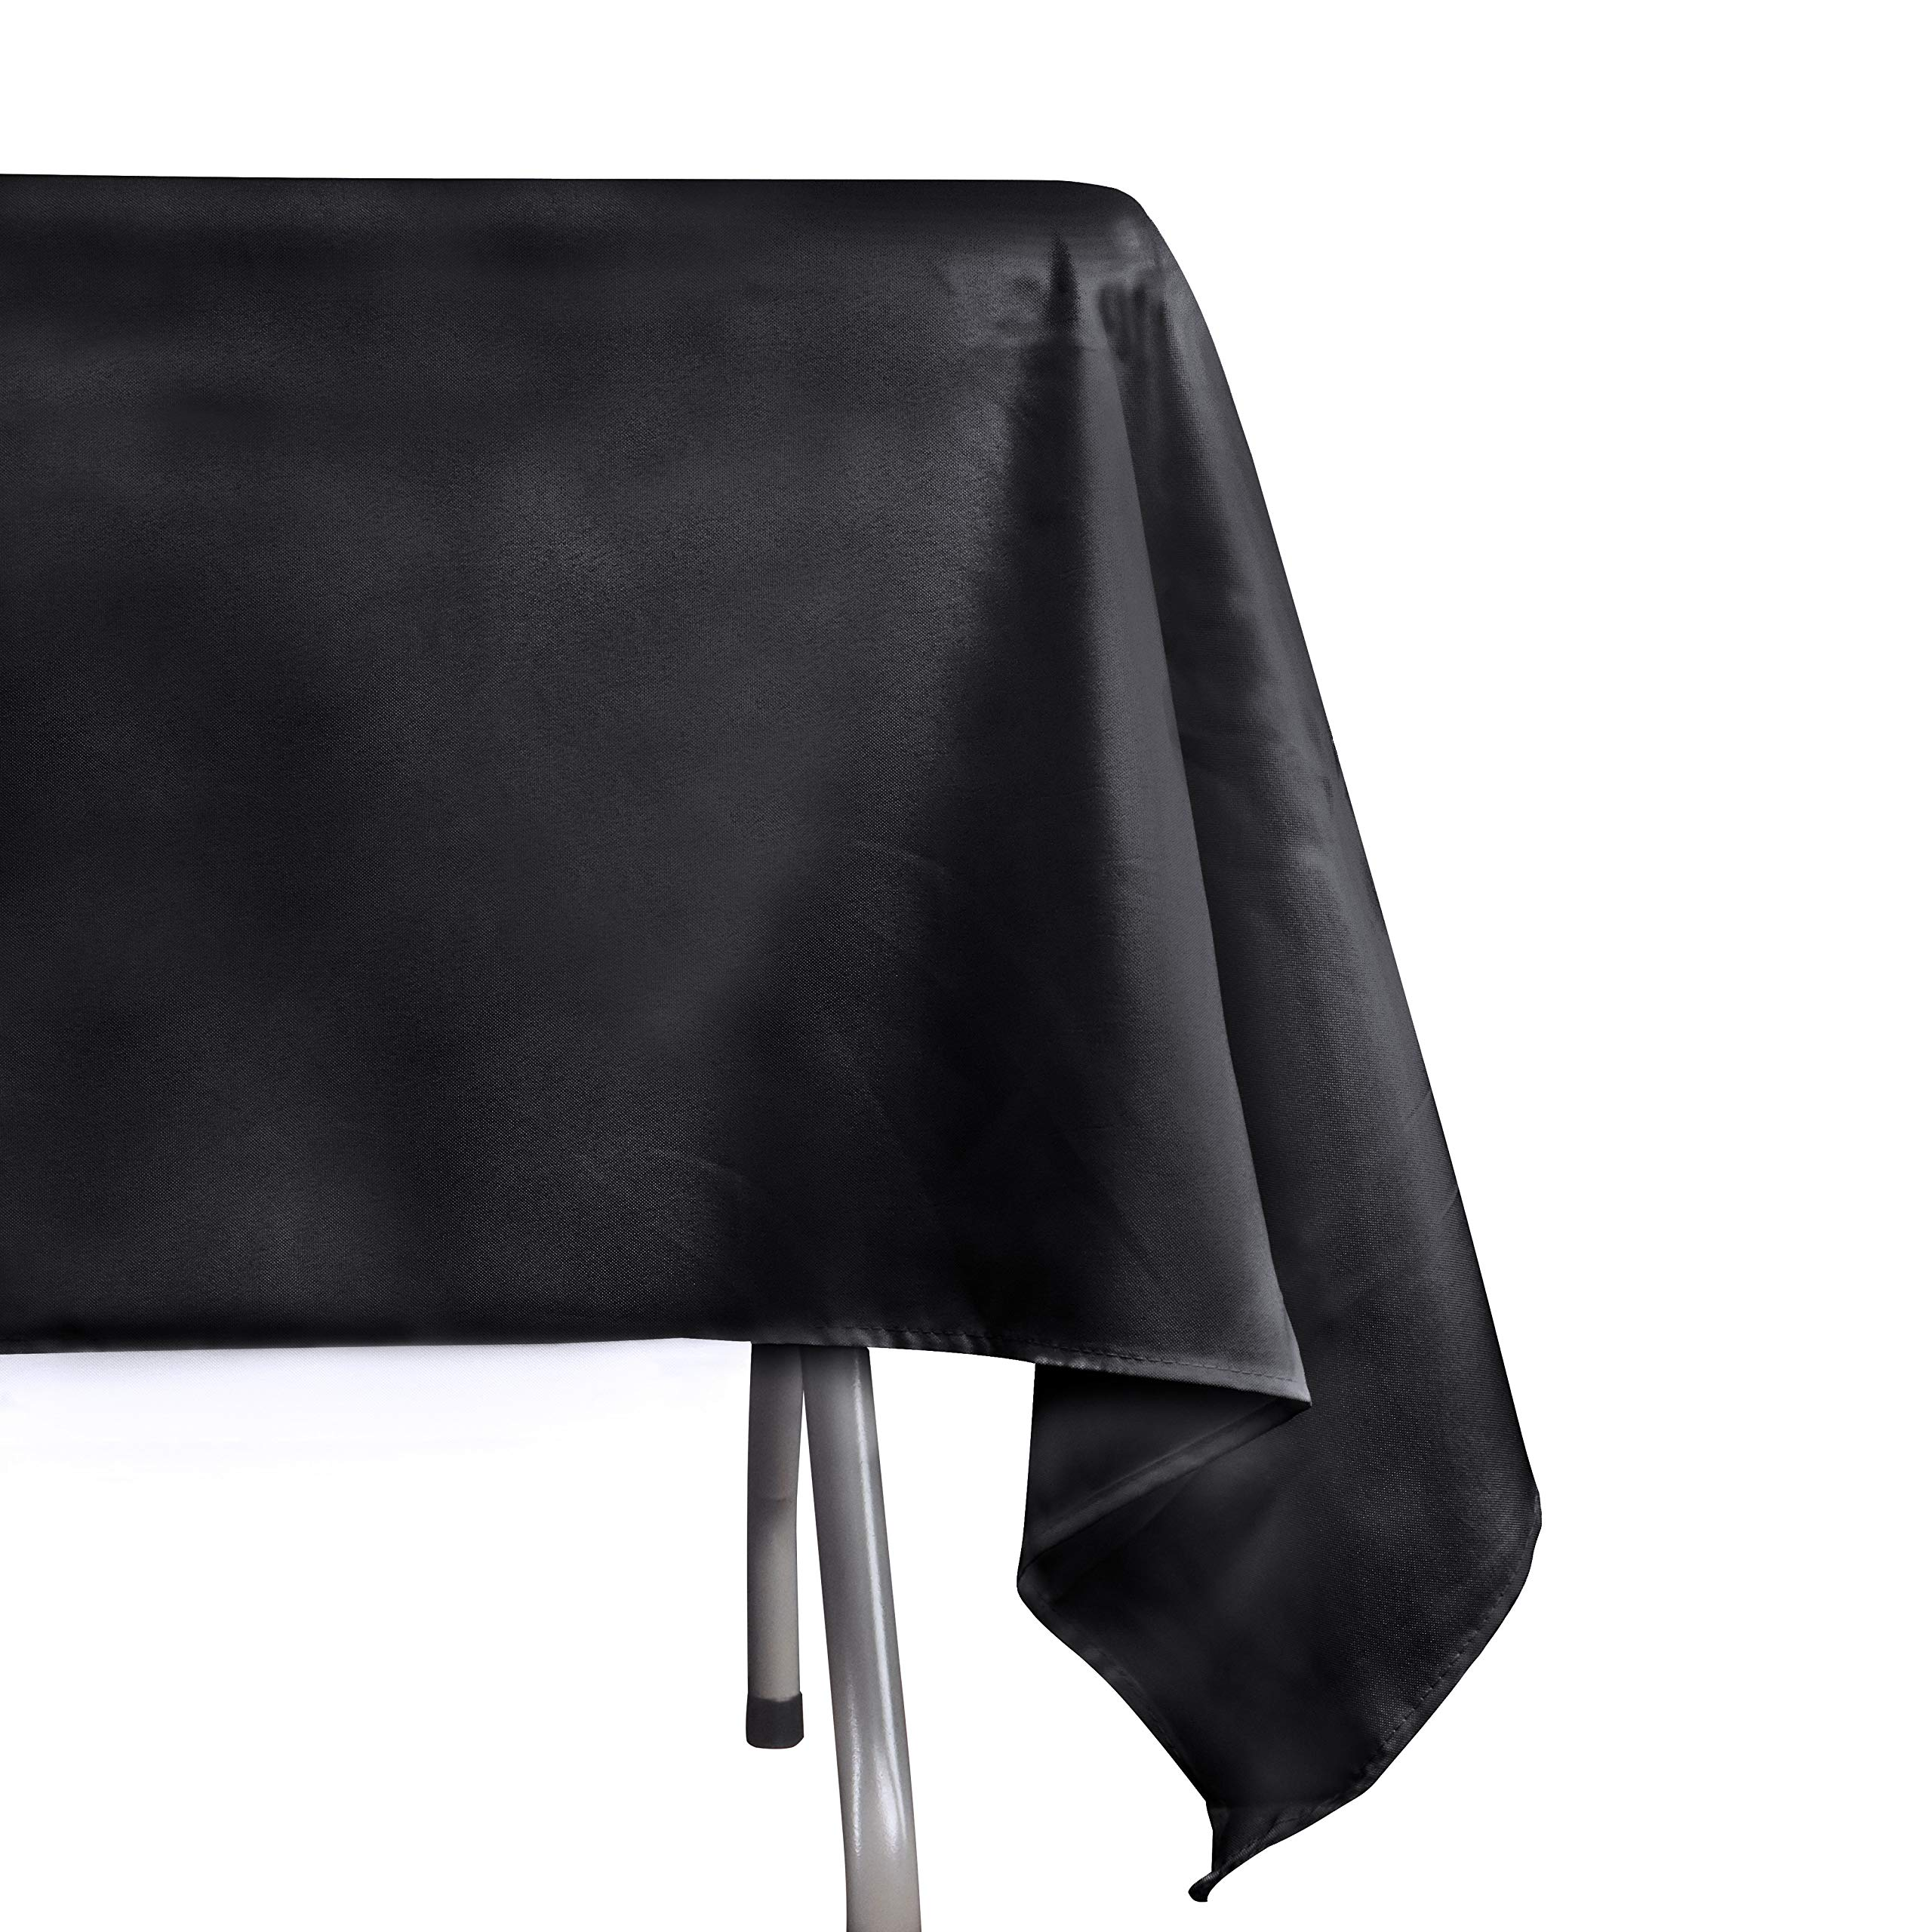 EMART Rectangle Tablecloth, 60 x 102 inch Black 100% Polyester Banquet Wedding Party Picnic Rectangular Table Cloths (6 Pack) by EMART